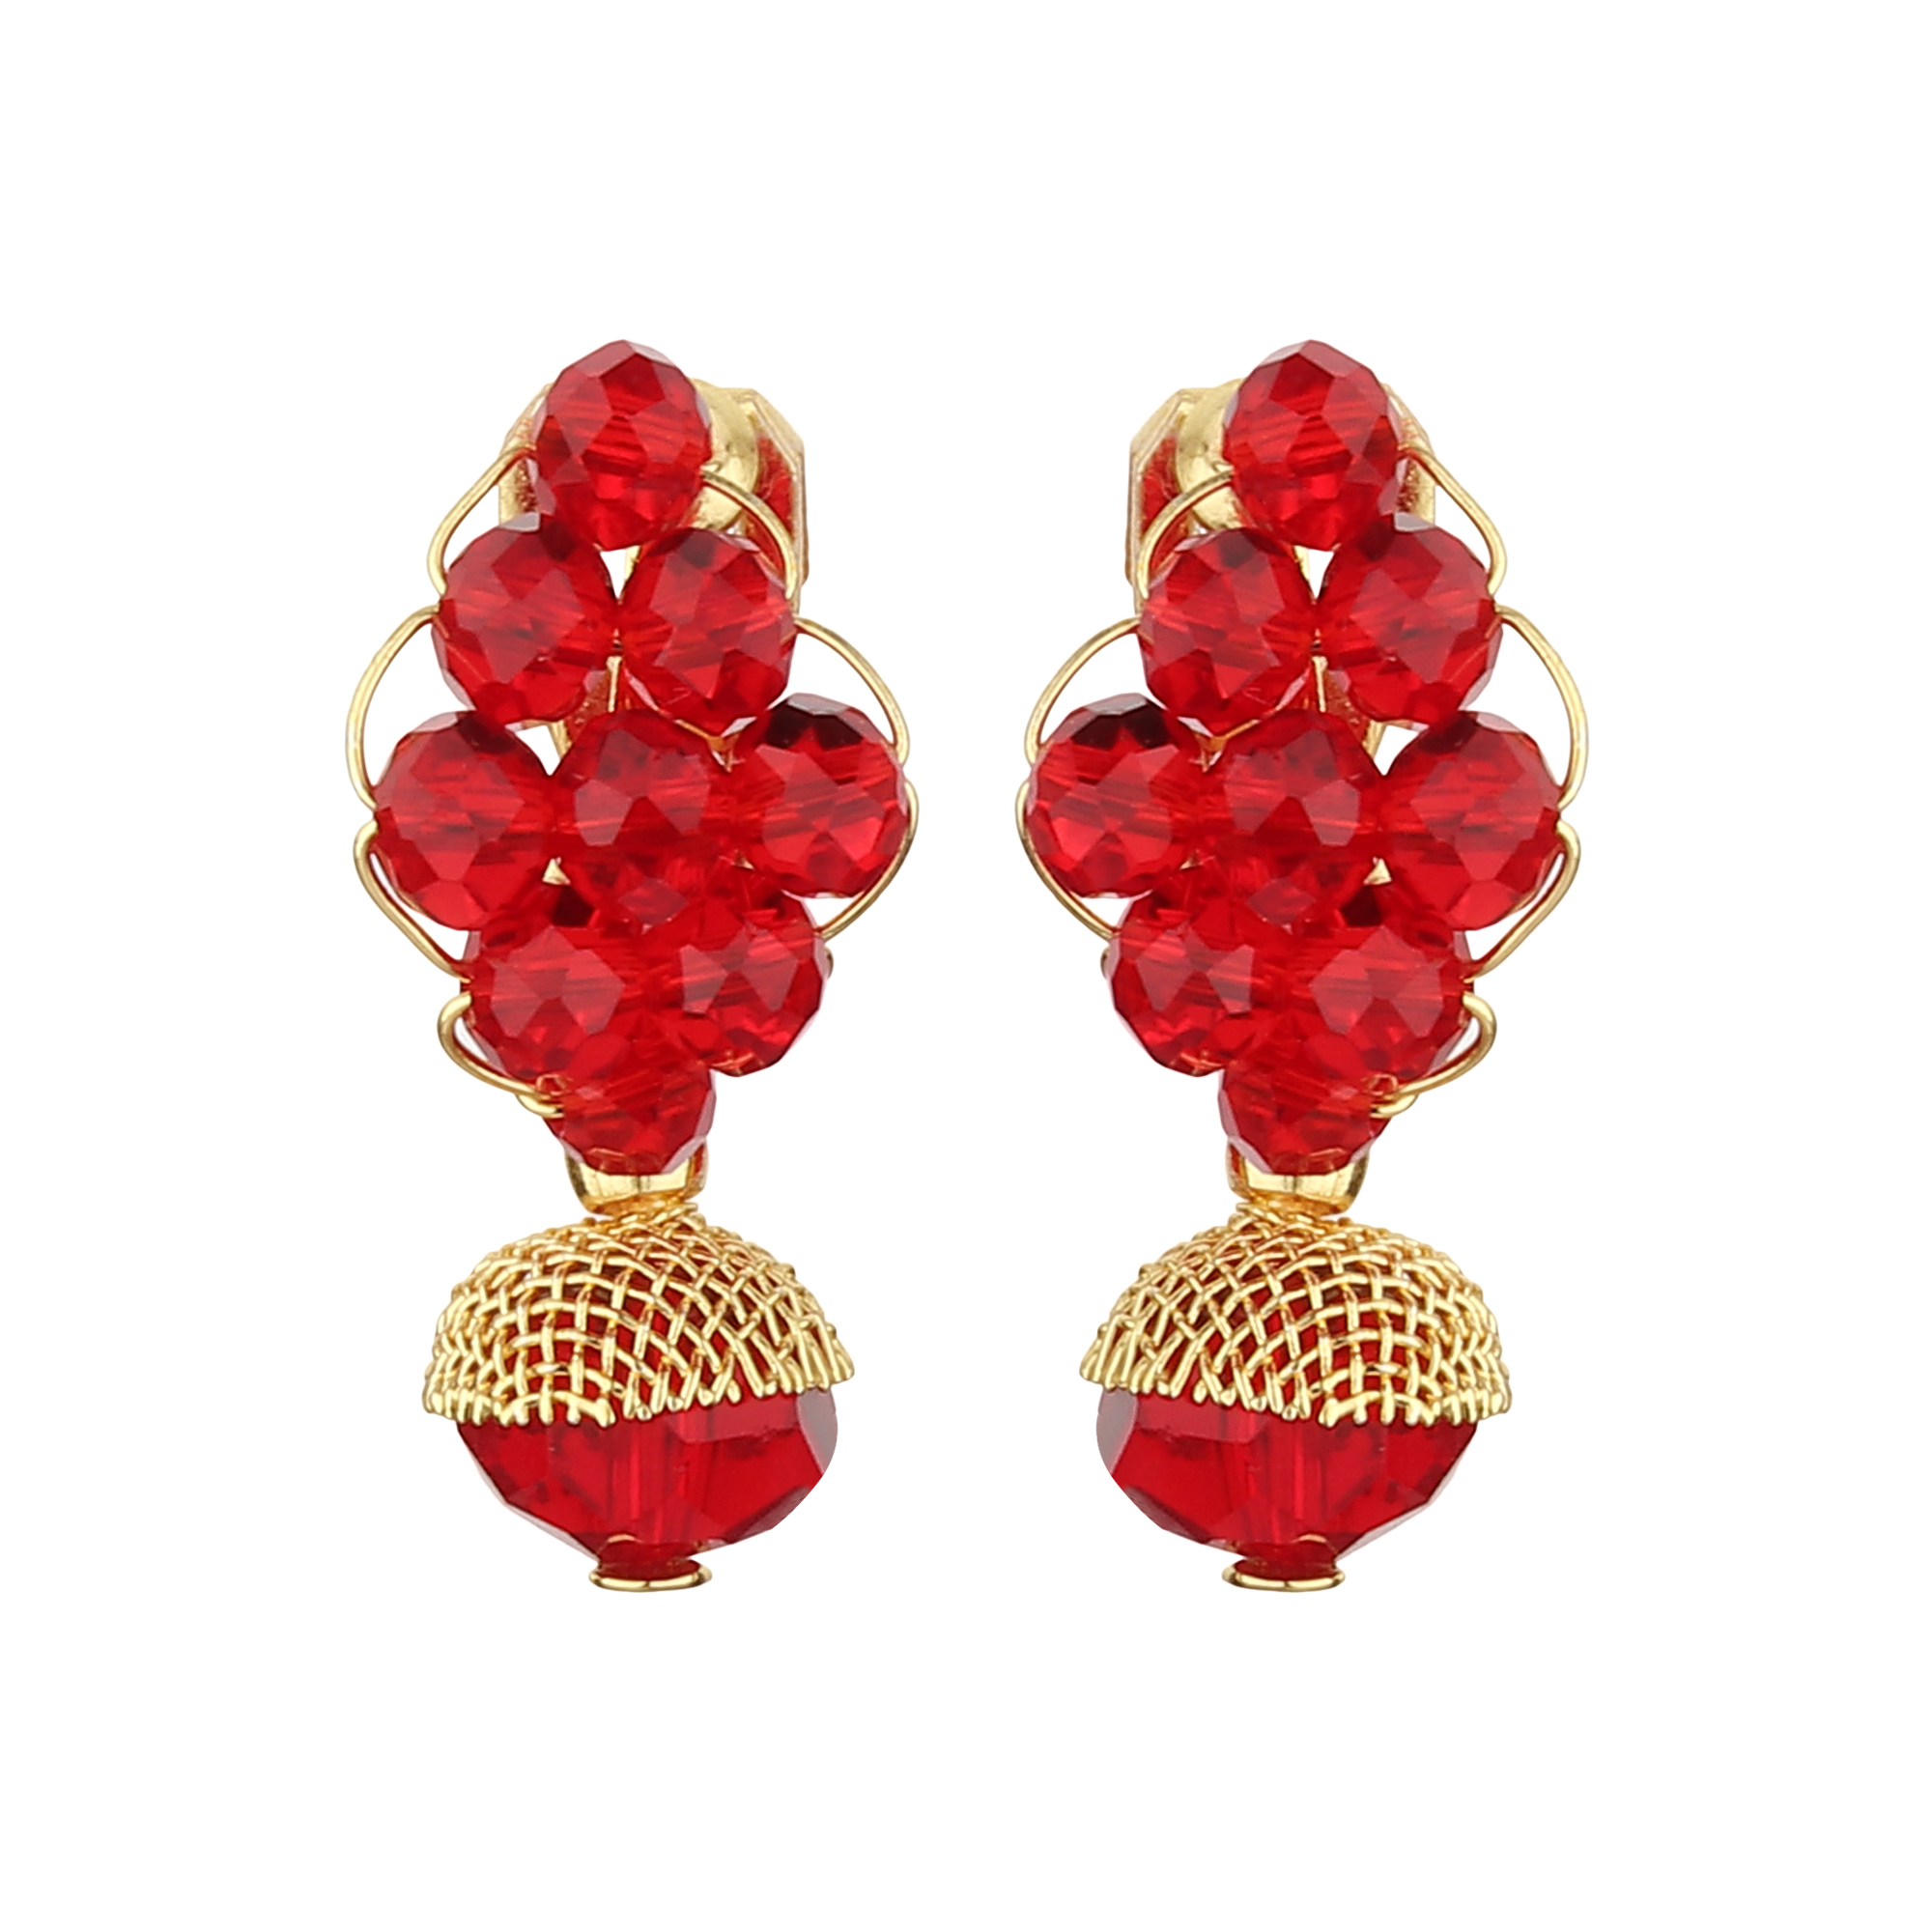 FirstBlush   FirstBlush Clip On Earrings for Non Piearced Ears for Women & Girls; Plating: Gold; Color: Red; Size: 28 X 11mm; Wt.: 4gm. (MIEC104M165)